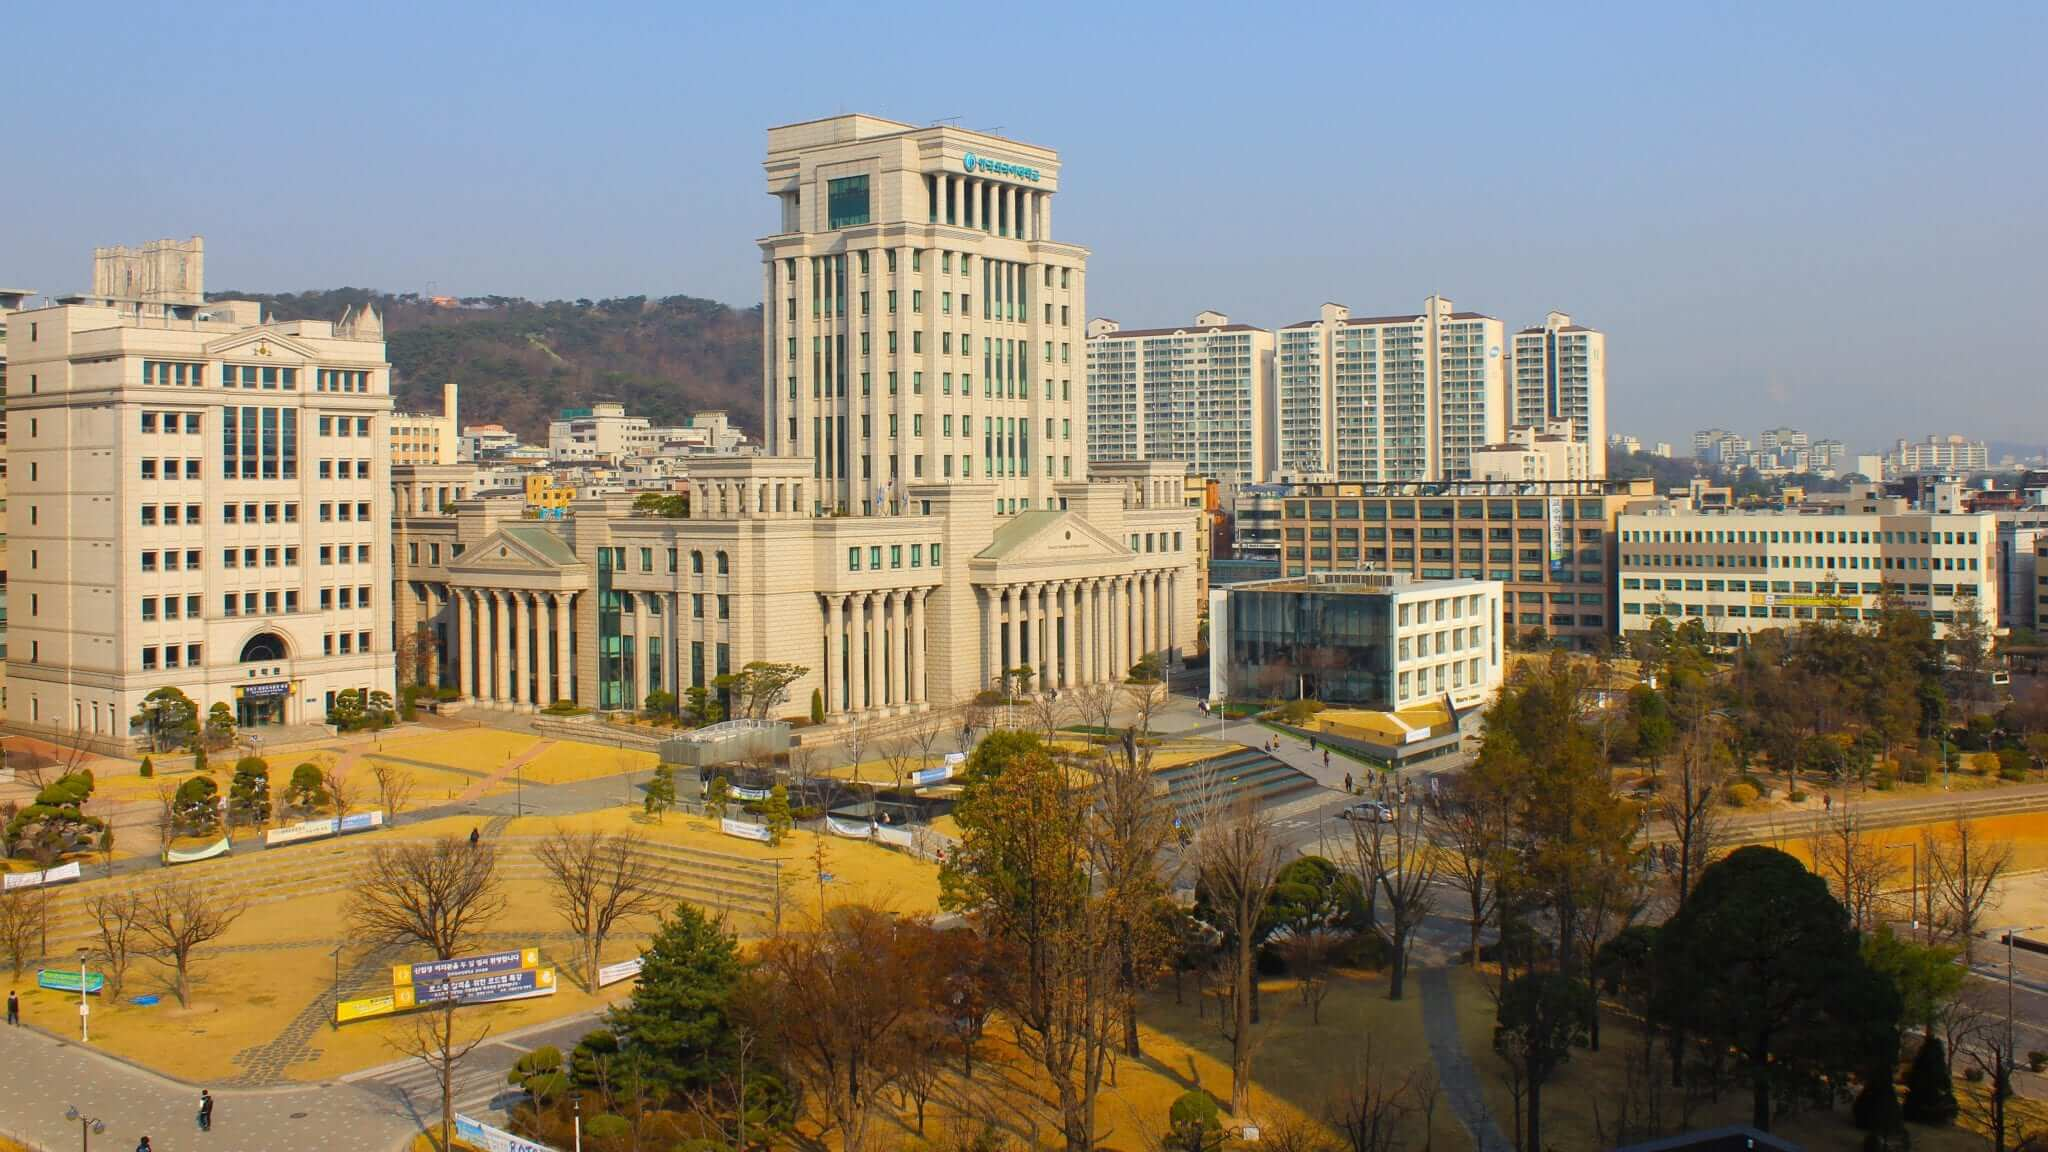 Hankuk University of Foreign Studies (Seoul, South Korea)